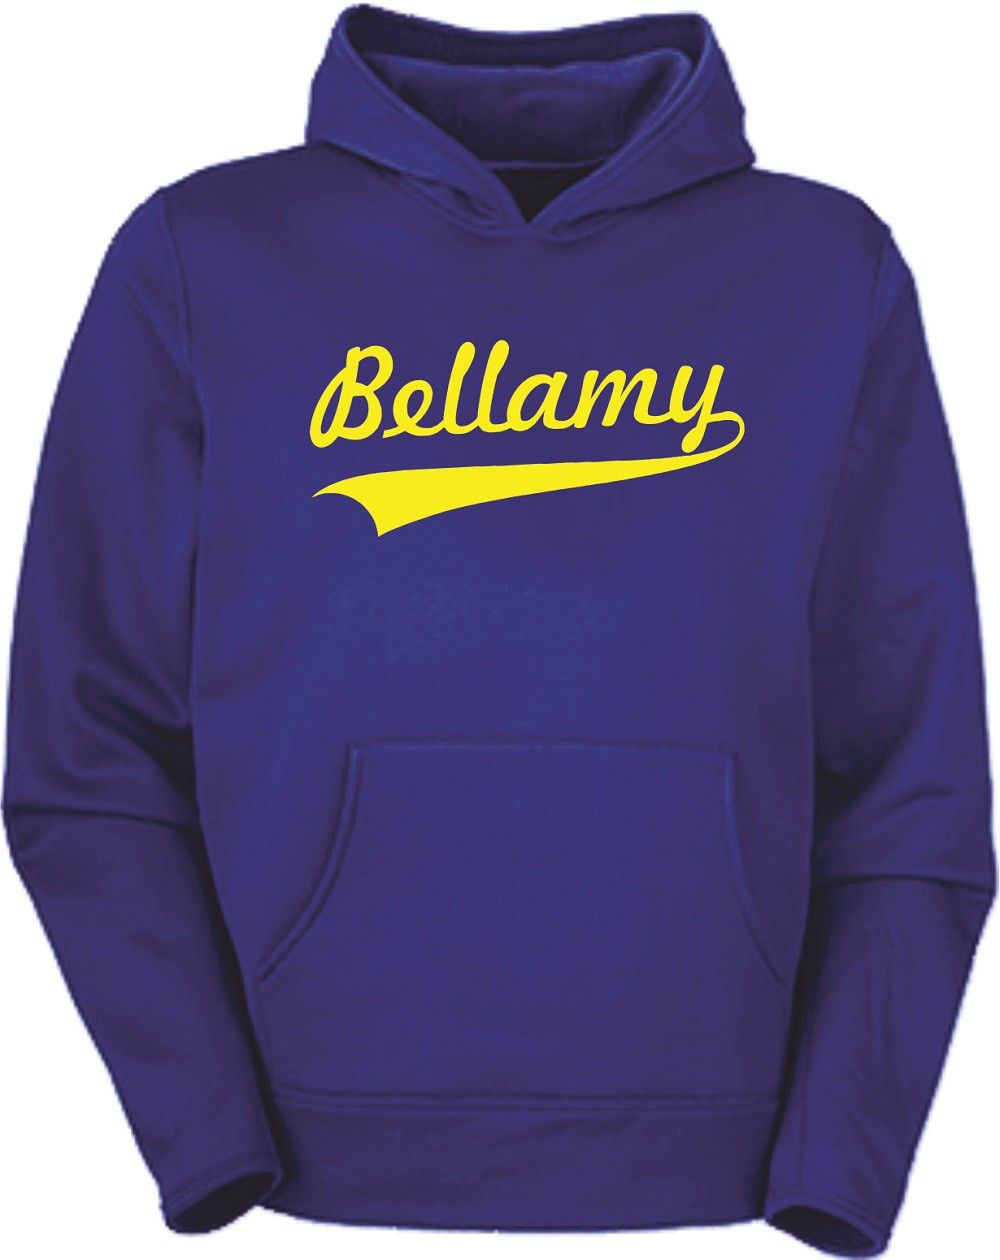 Bellamy Swoosh Pullover Hoodies